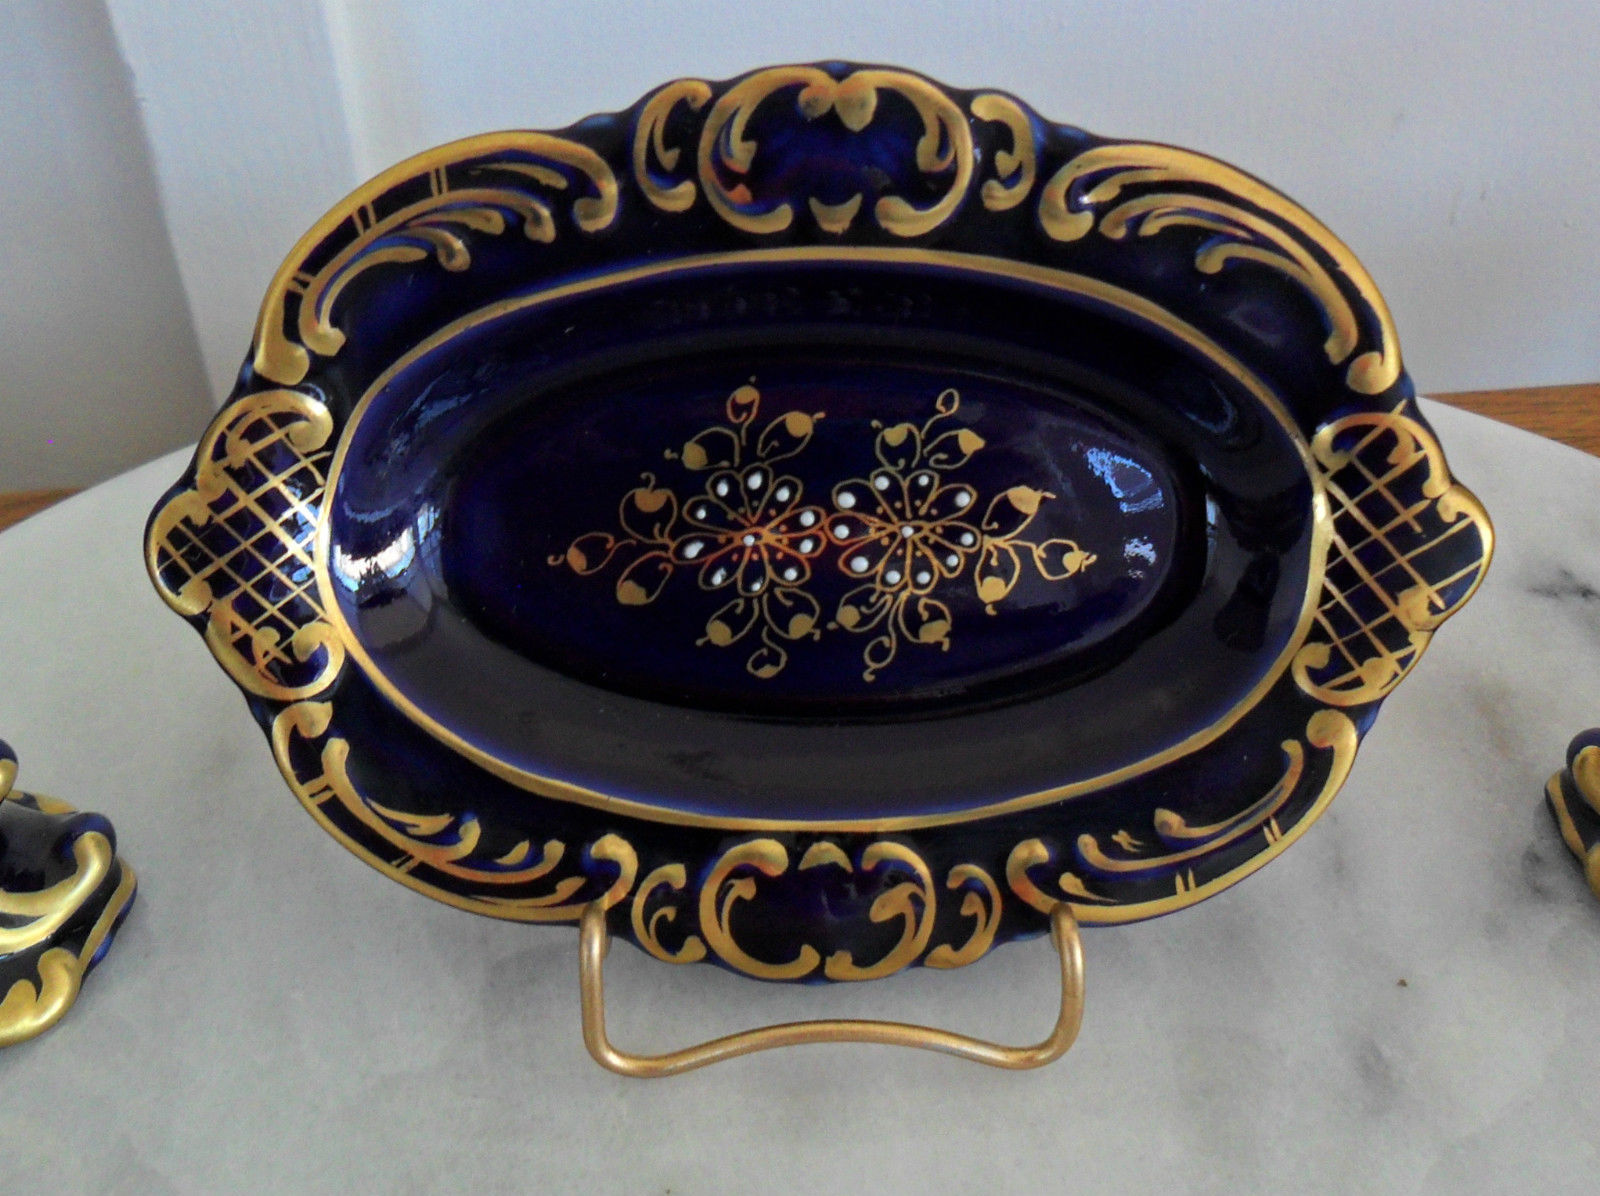 Antique Dresser Pin Tray With Matching Candlestick Holders Hand Painted